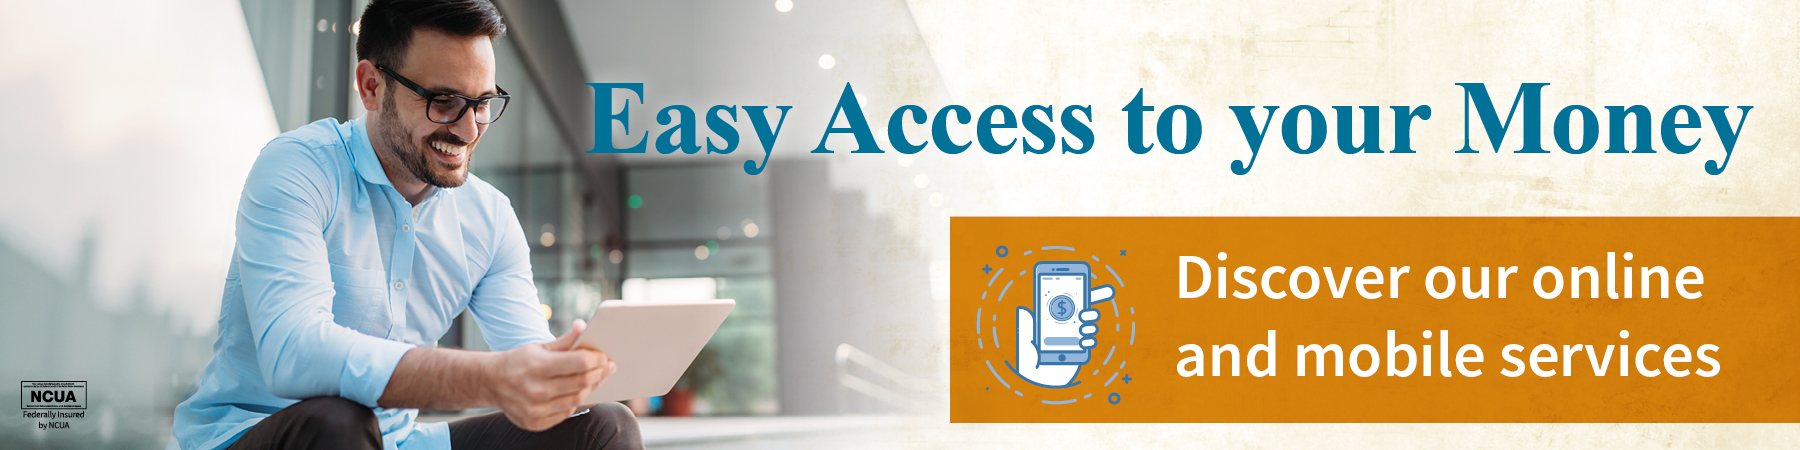 Easy Access to Your Money. Discover our Online and Mobile Services